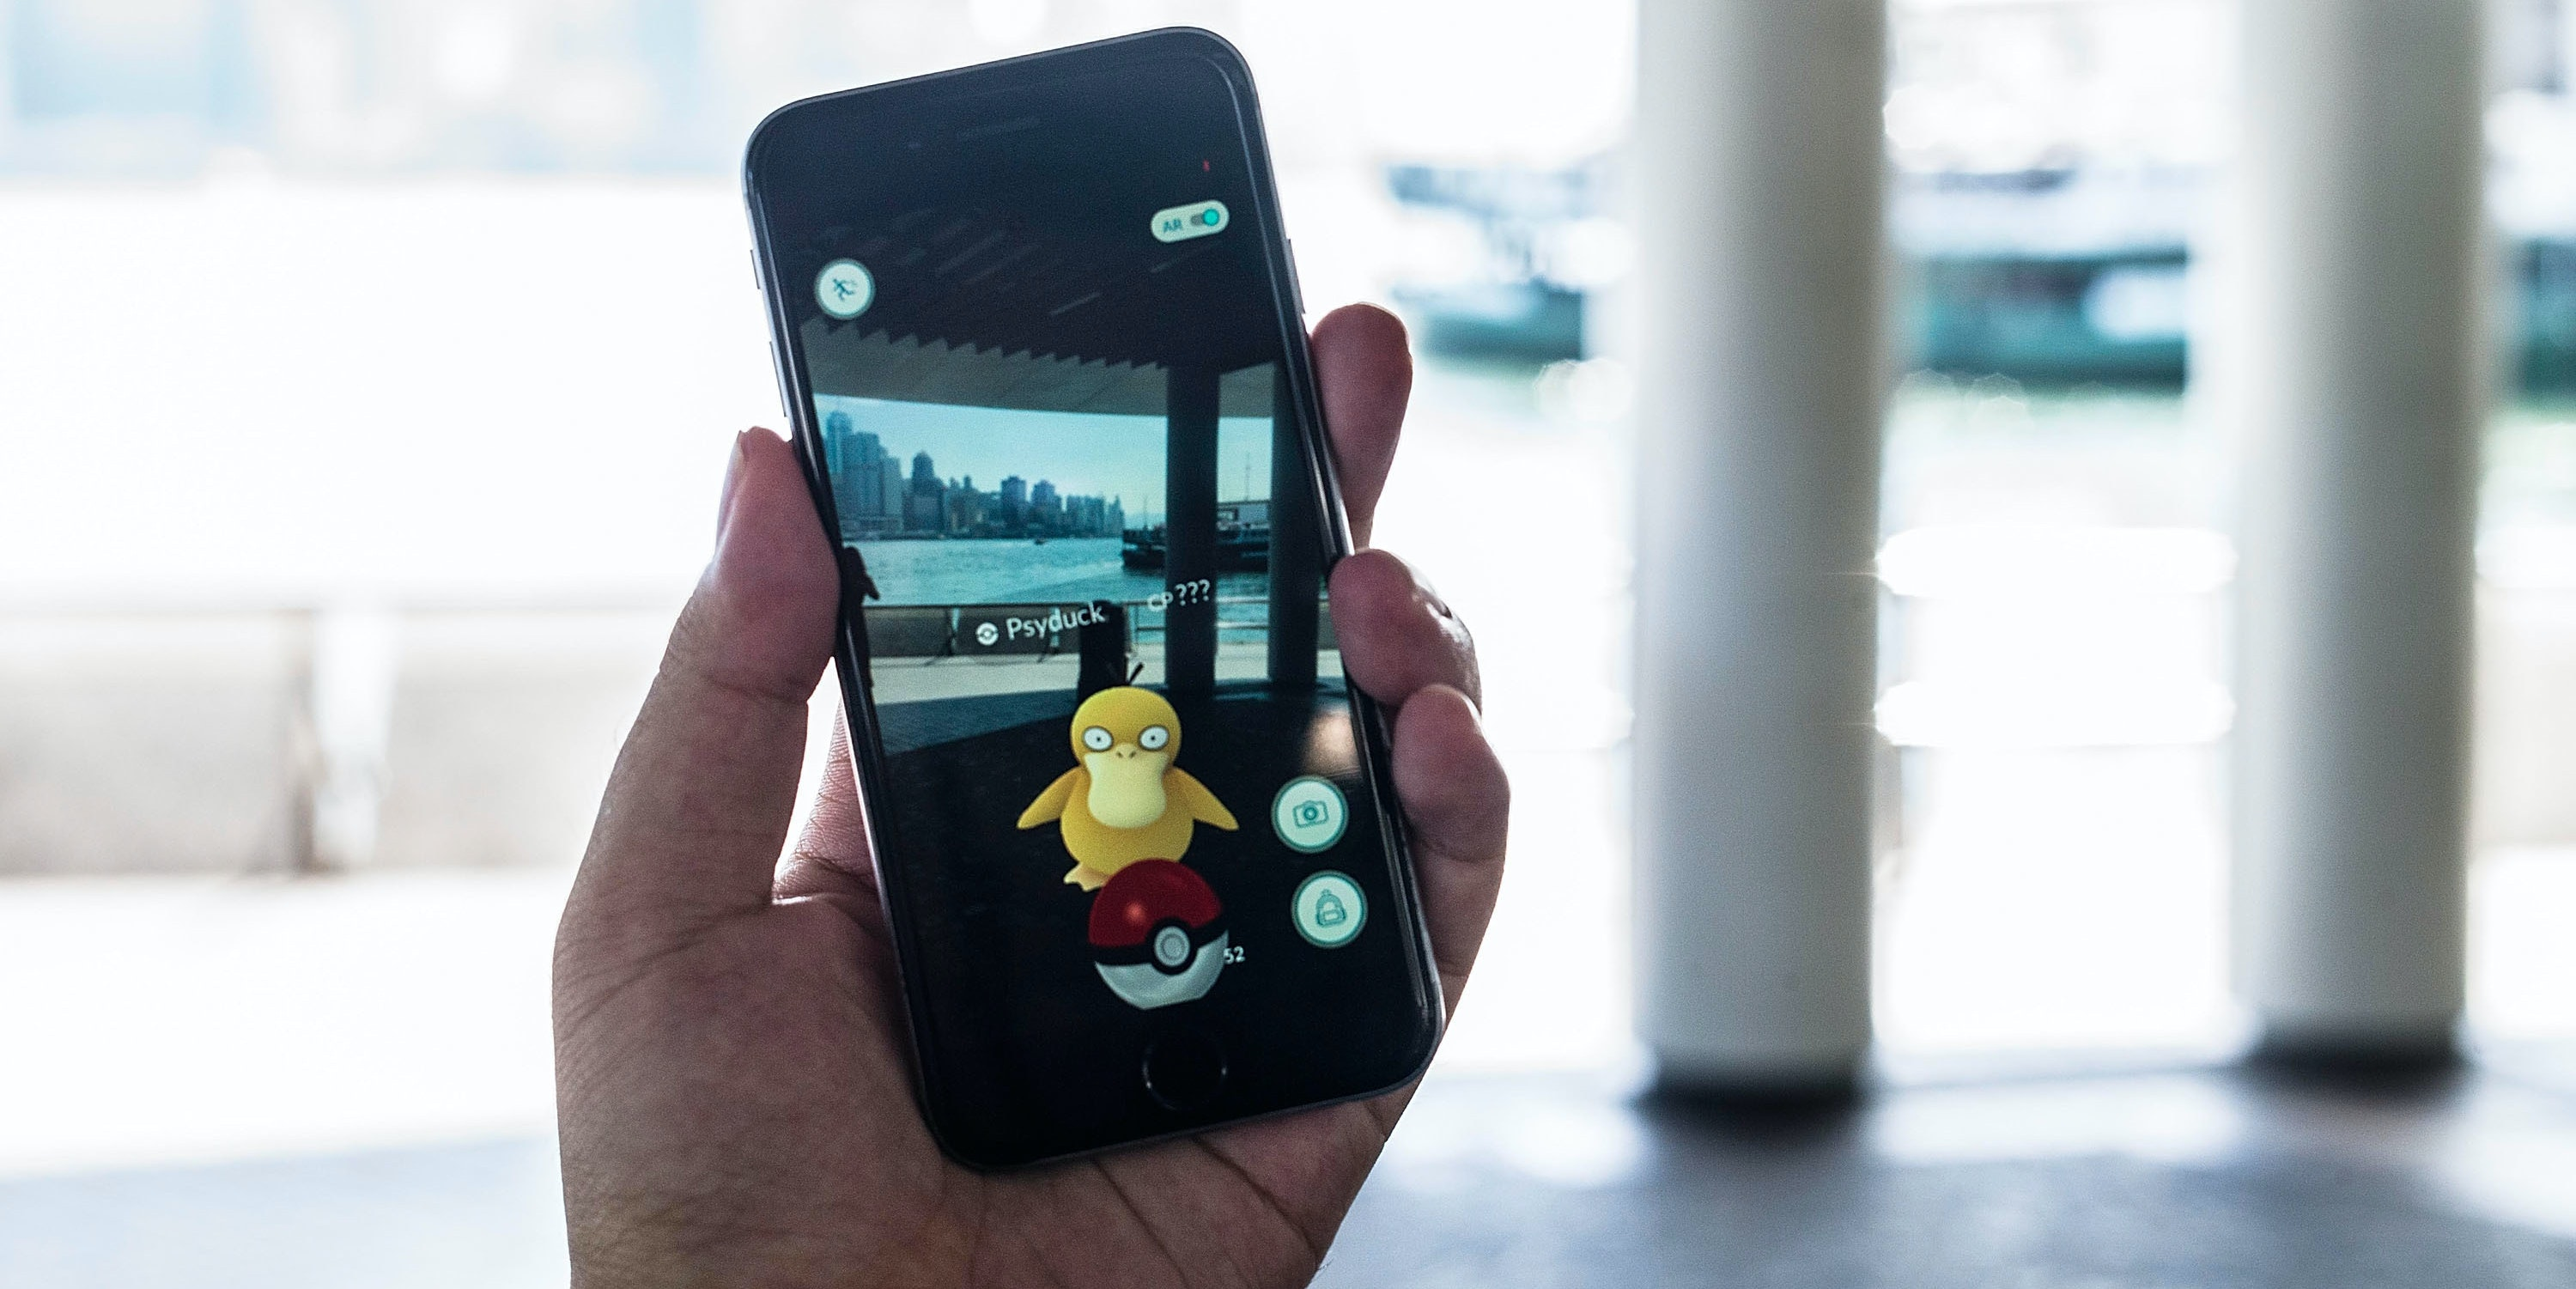 HONG KONG - JULY 25:  Pokemon species Psyduck is seen in the Pokemon Go game on July 25, 2016 in Tsim Sha Tsui, Hong Kong. 'Pokemon Go,' which has been a smash-hit across the globe was launched in Hong Kong on 25th July. Since its global launch, the mobile game has been an unexpected megahit among users who have taken to the streets with their smartphones.  (Photo by Lam Yik Fei/Getty Images)